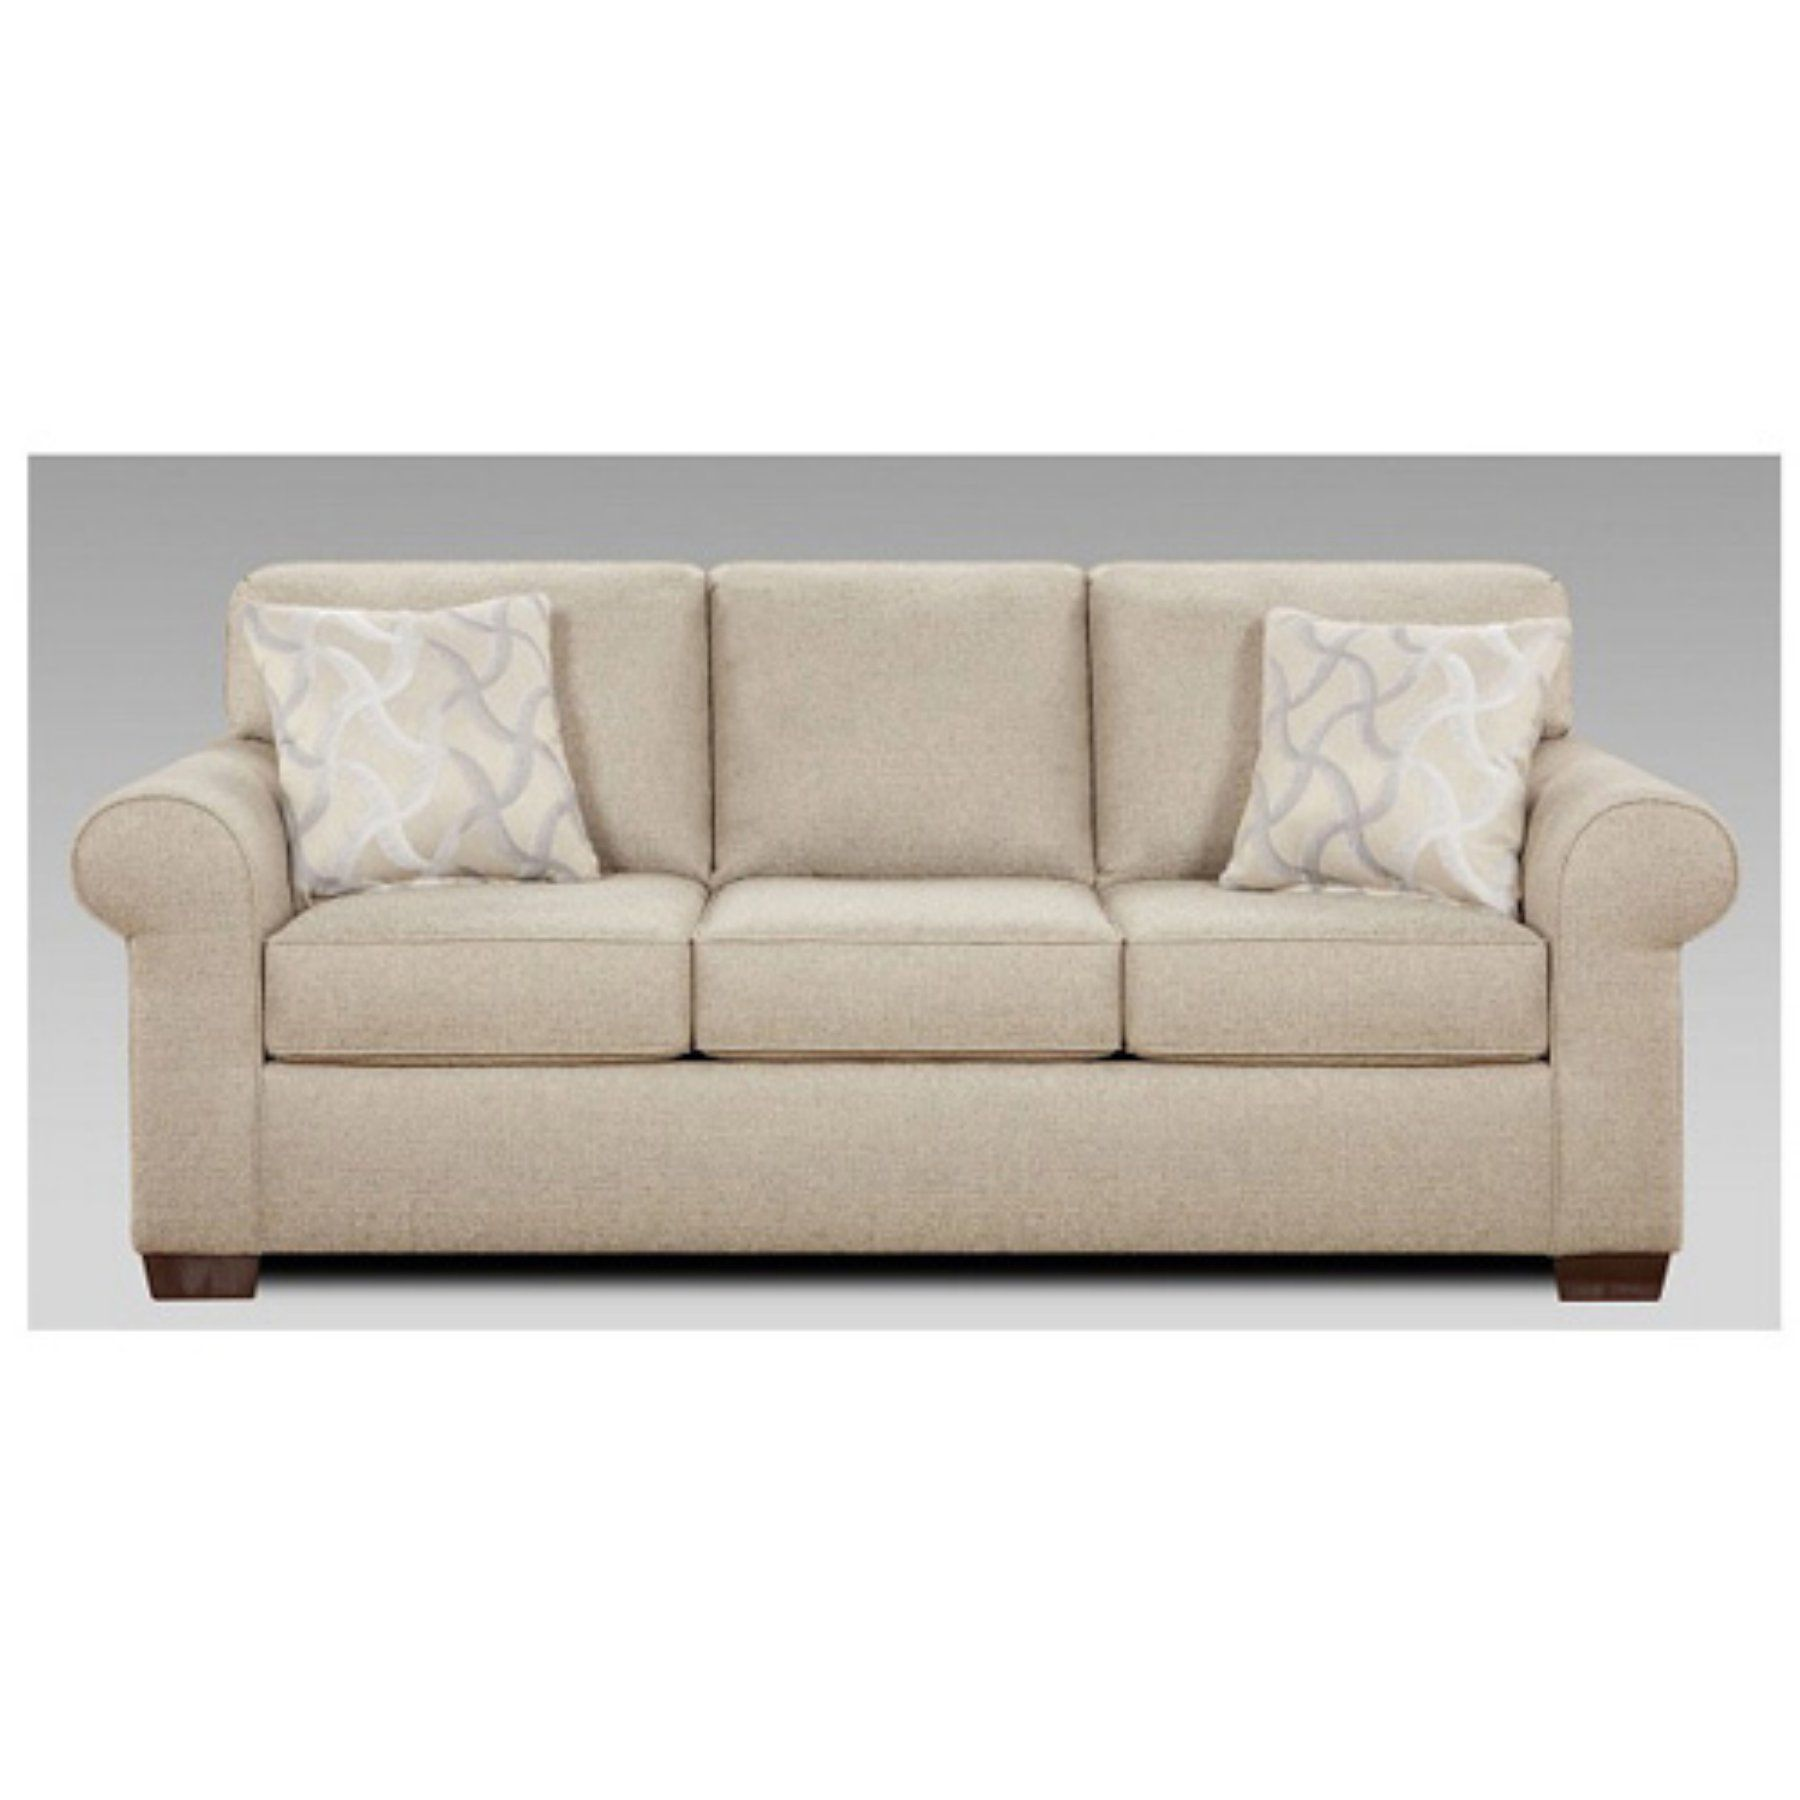 Surprising Chelsea Home Furniture Ainsley Sofa 193403 S Cs Products Ncnpc Chair Design For Home Ncnpcorg